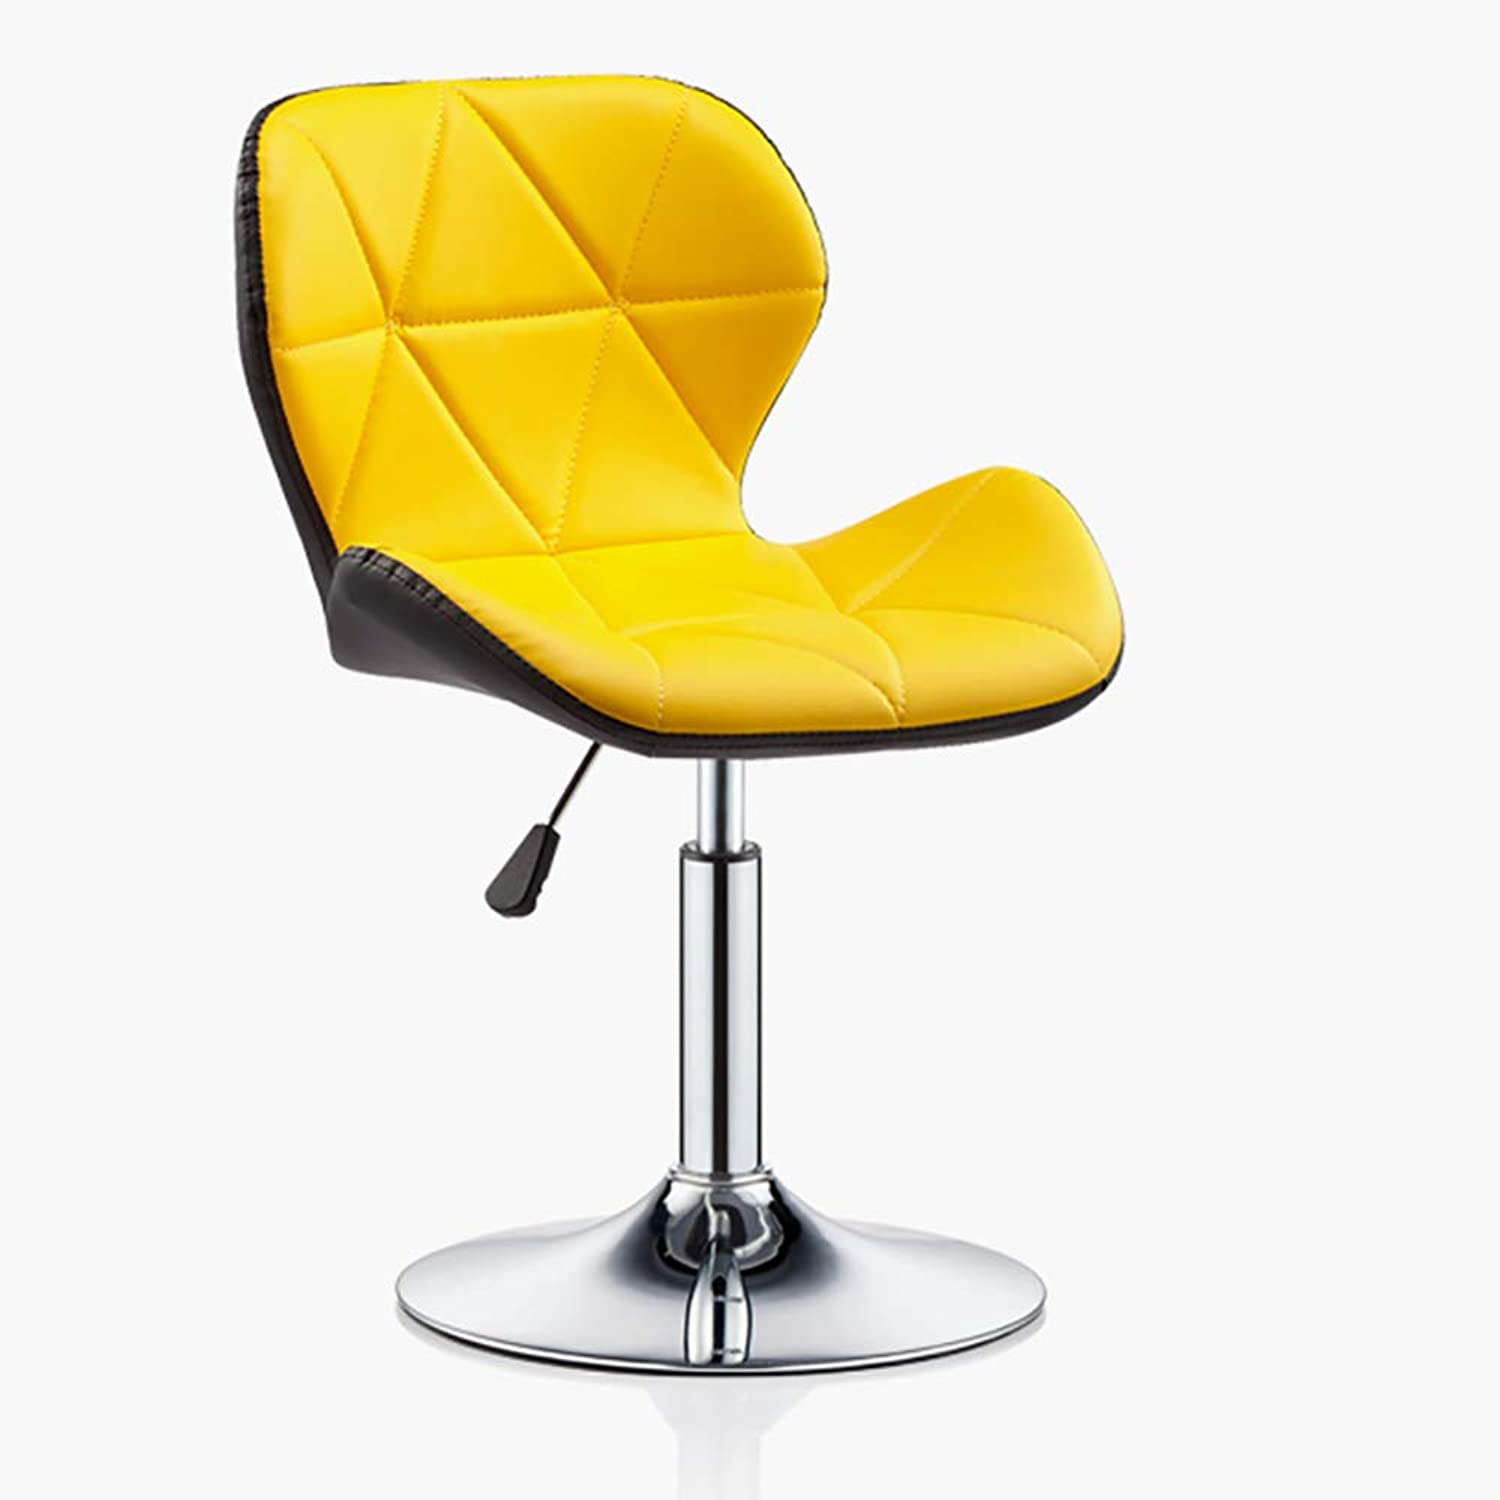 Bar Table and Chair, Office Work Stool Chair, Adjustable 360° redatable, Round Front Reception Stool-Yellow